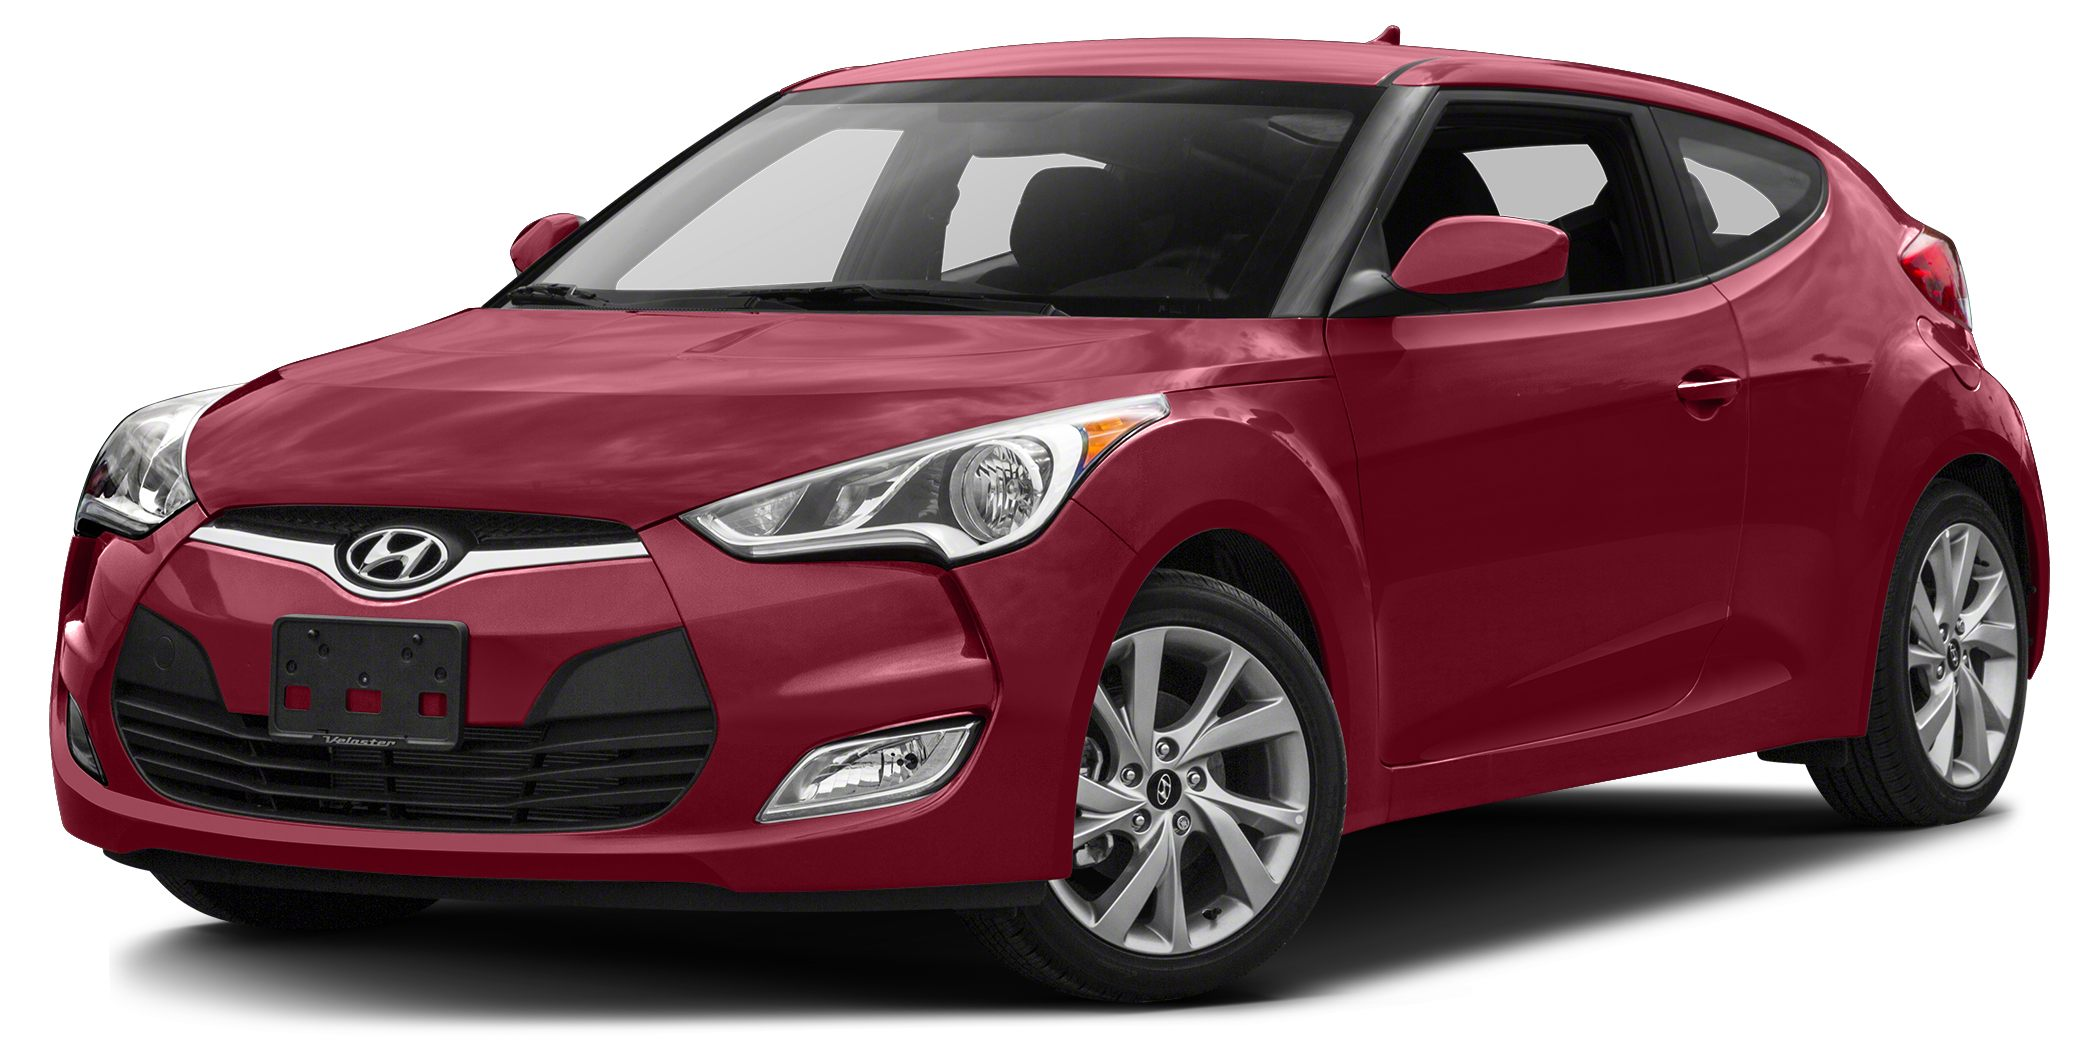 2016 Hyundai Veloster Base Bluetooth for Phone and Audio Streaming Style Package 02 Alloy Pedals